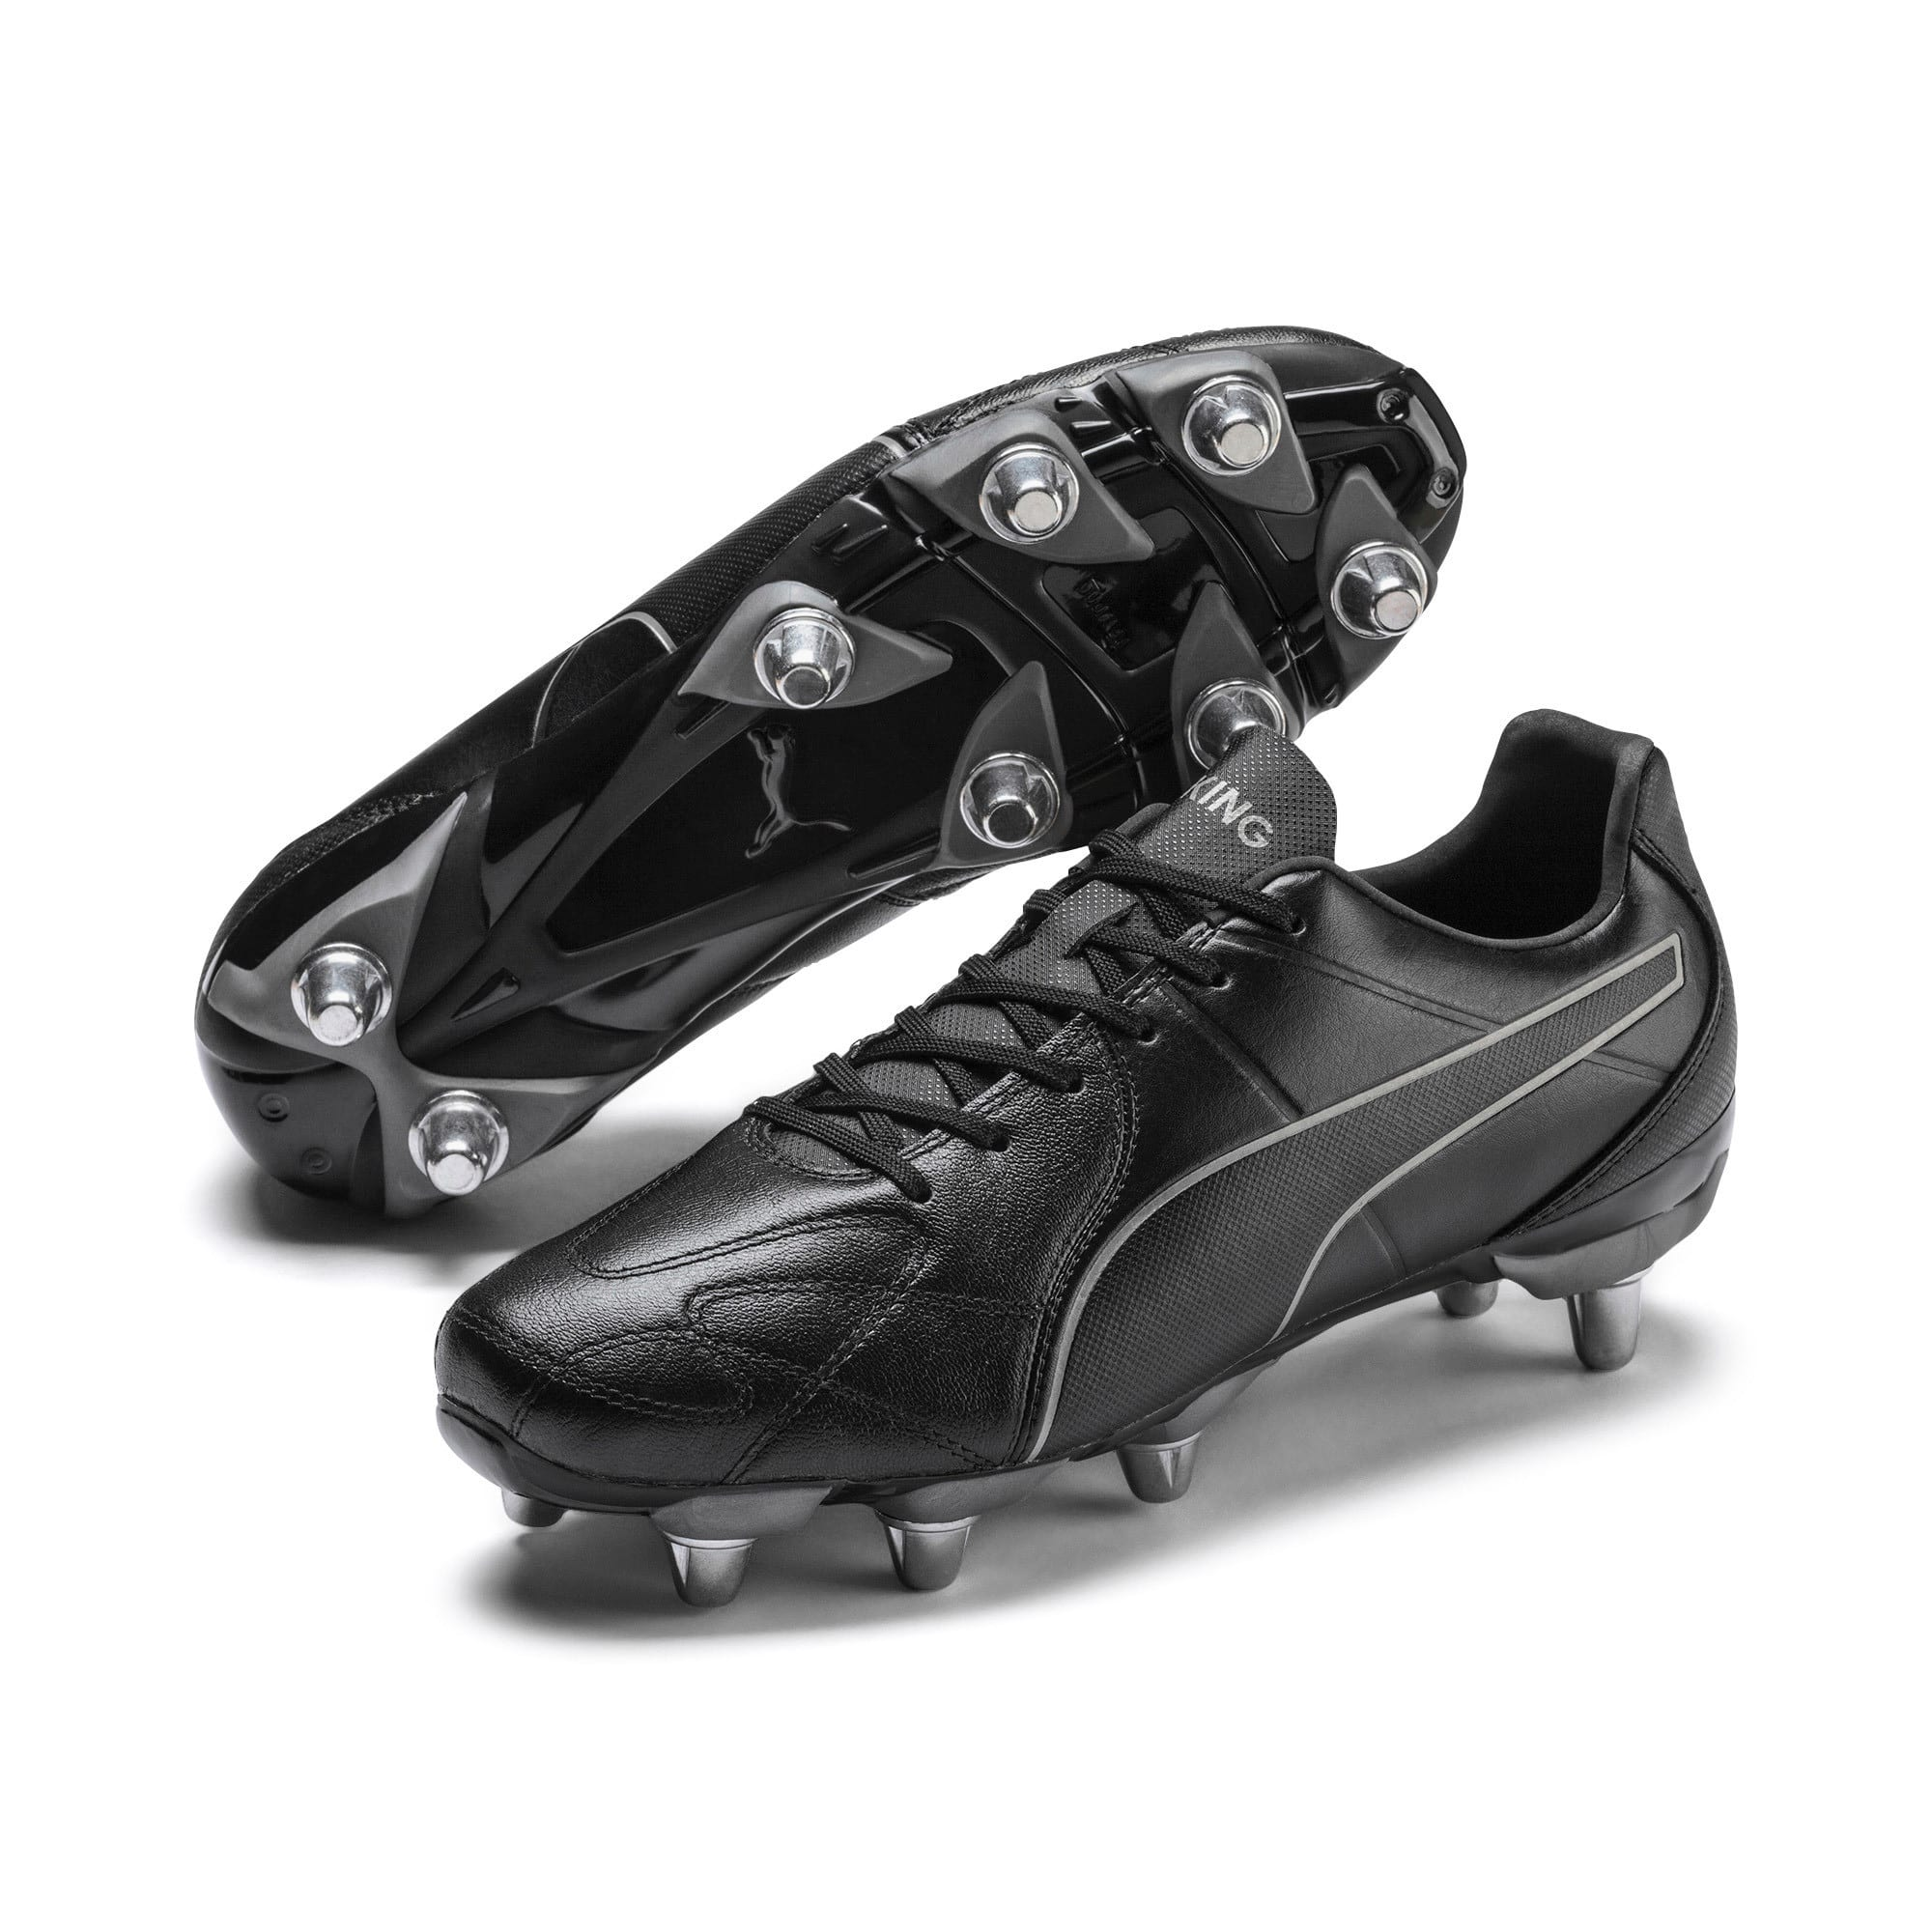 Thumbnail 2 of KING Hero H8 Men's Rugby Boots, Puma Black-Puma Aged Silver, medium